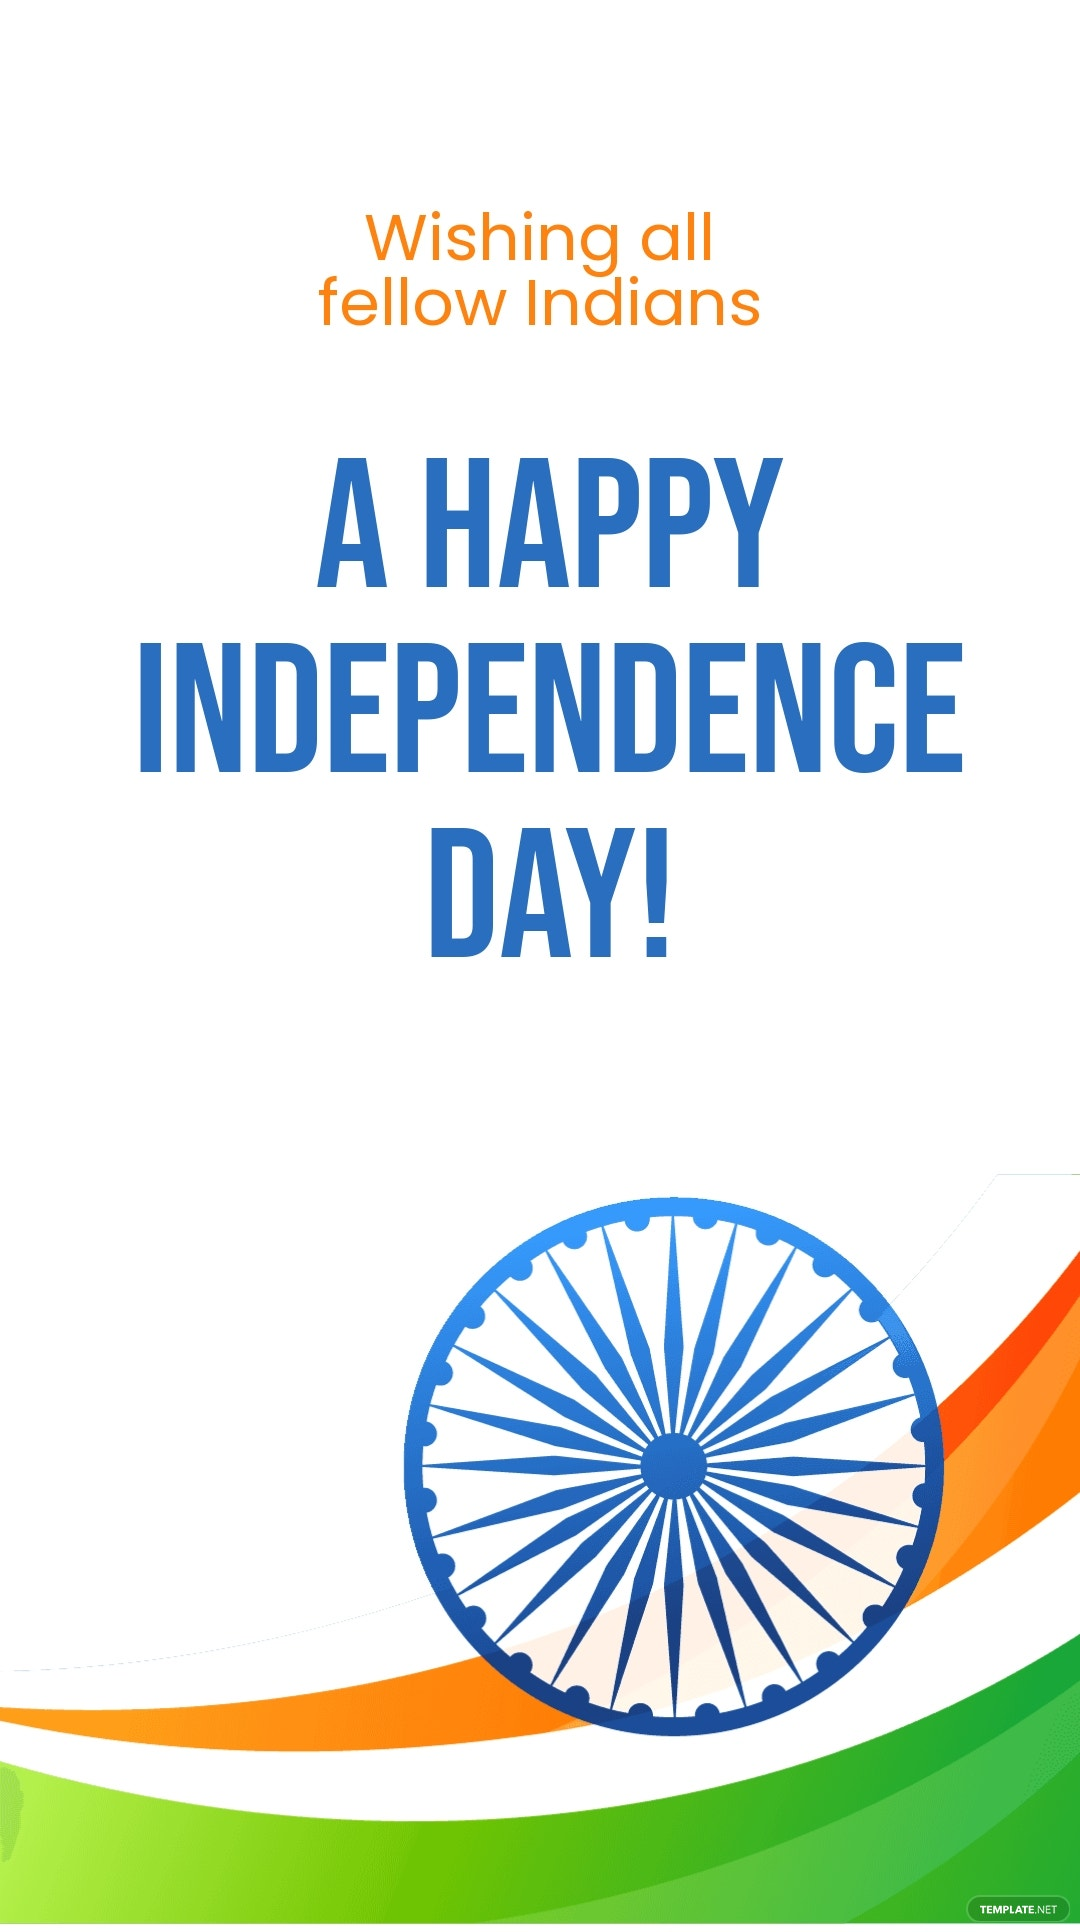 Happy Indian Independence Day Whatsapp Post Template.jpe